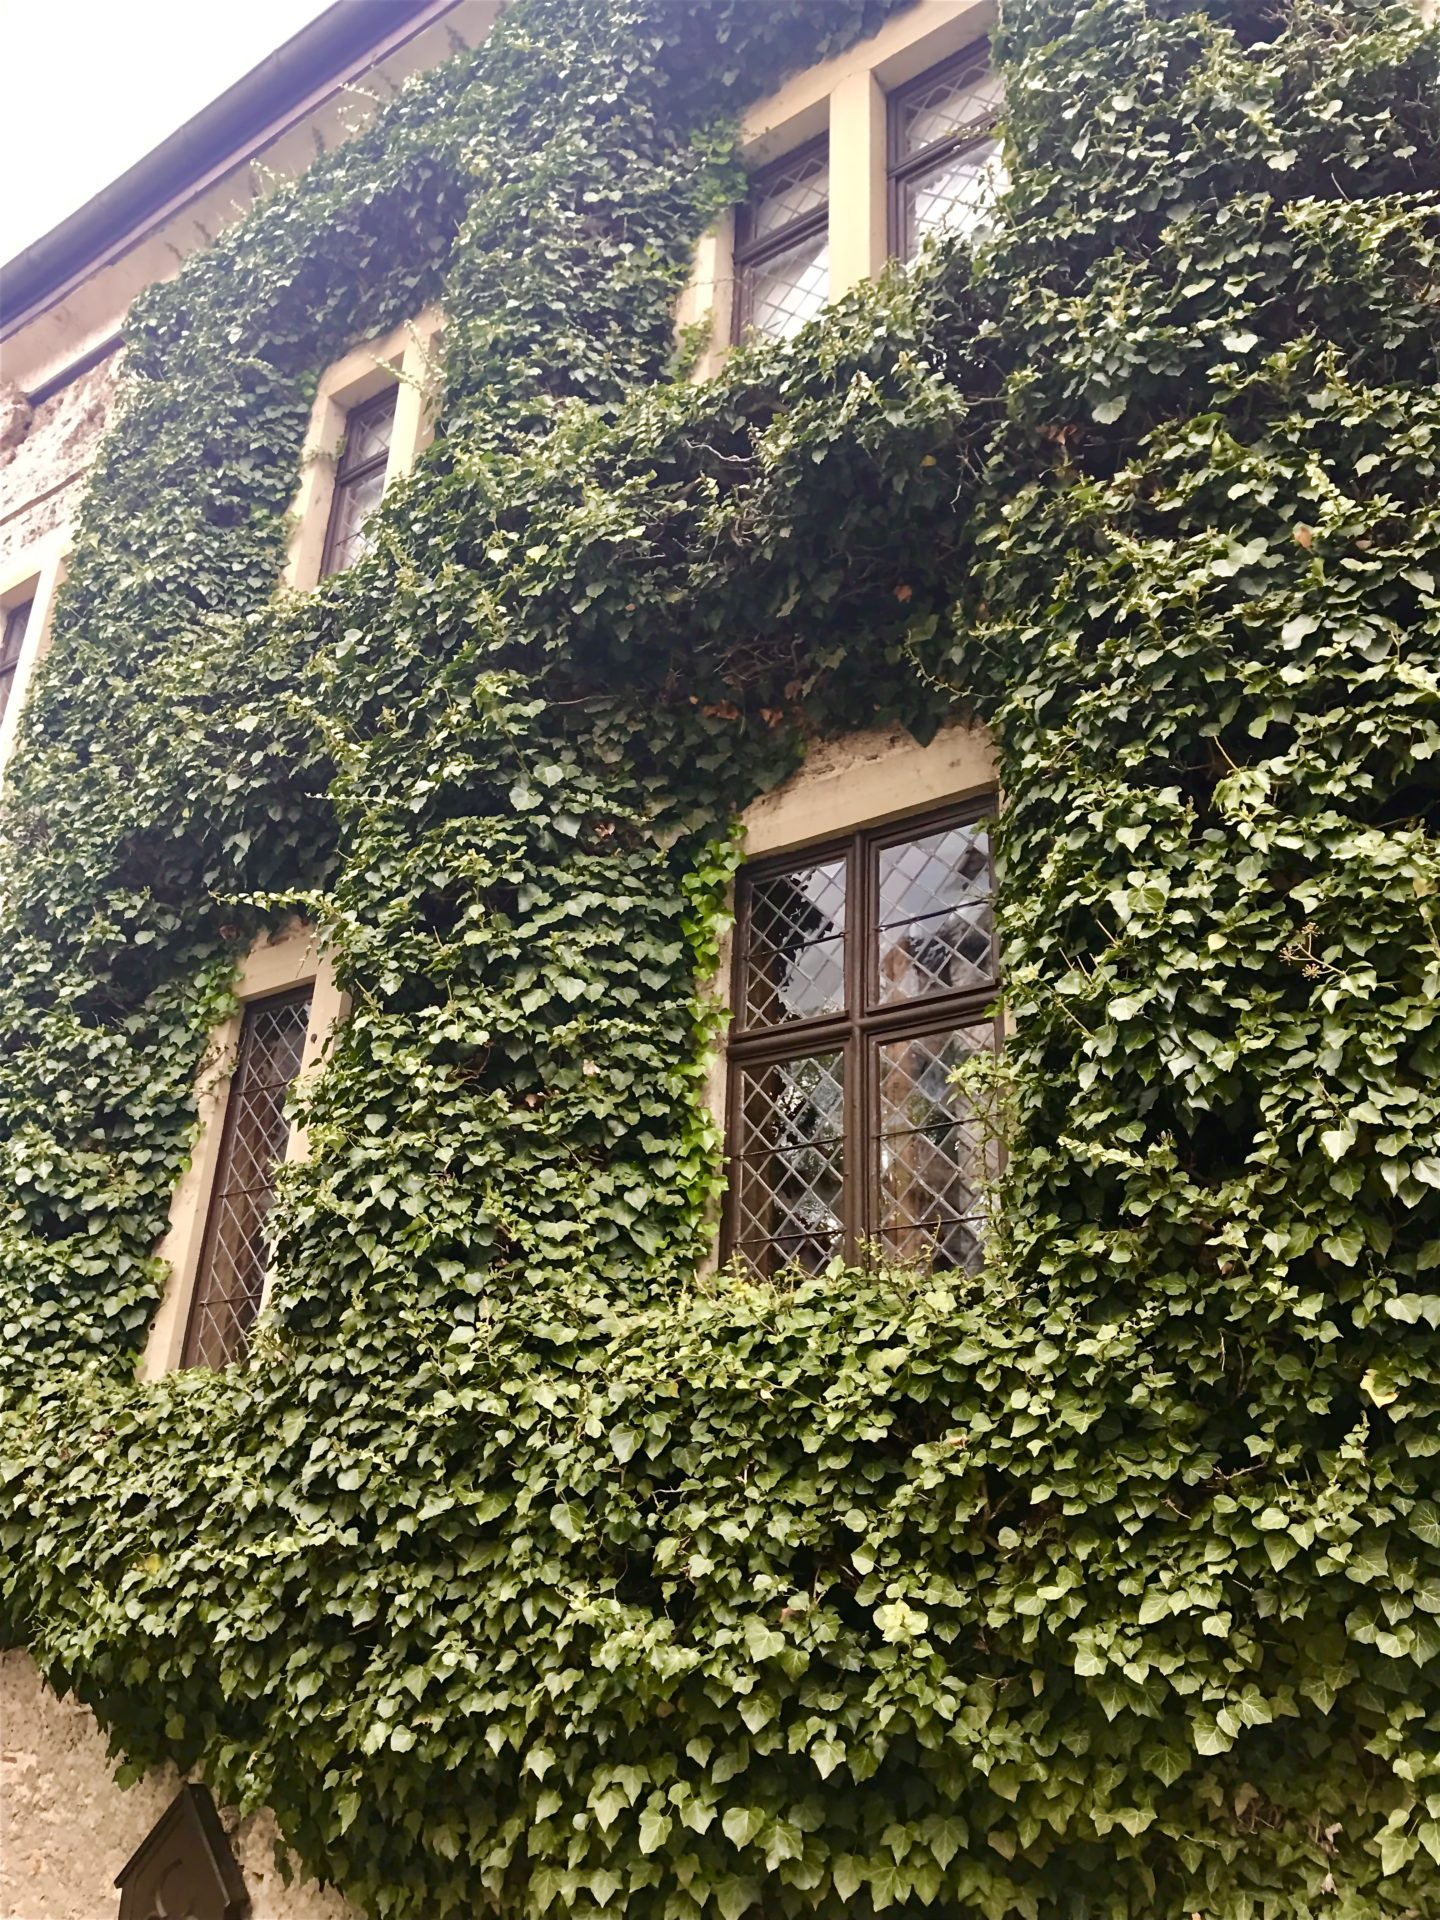 Ivy-covered building in the courtyard of Schloss Lichtenstein